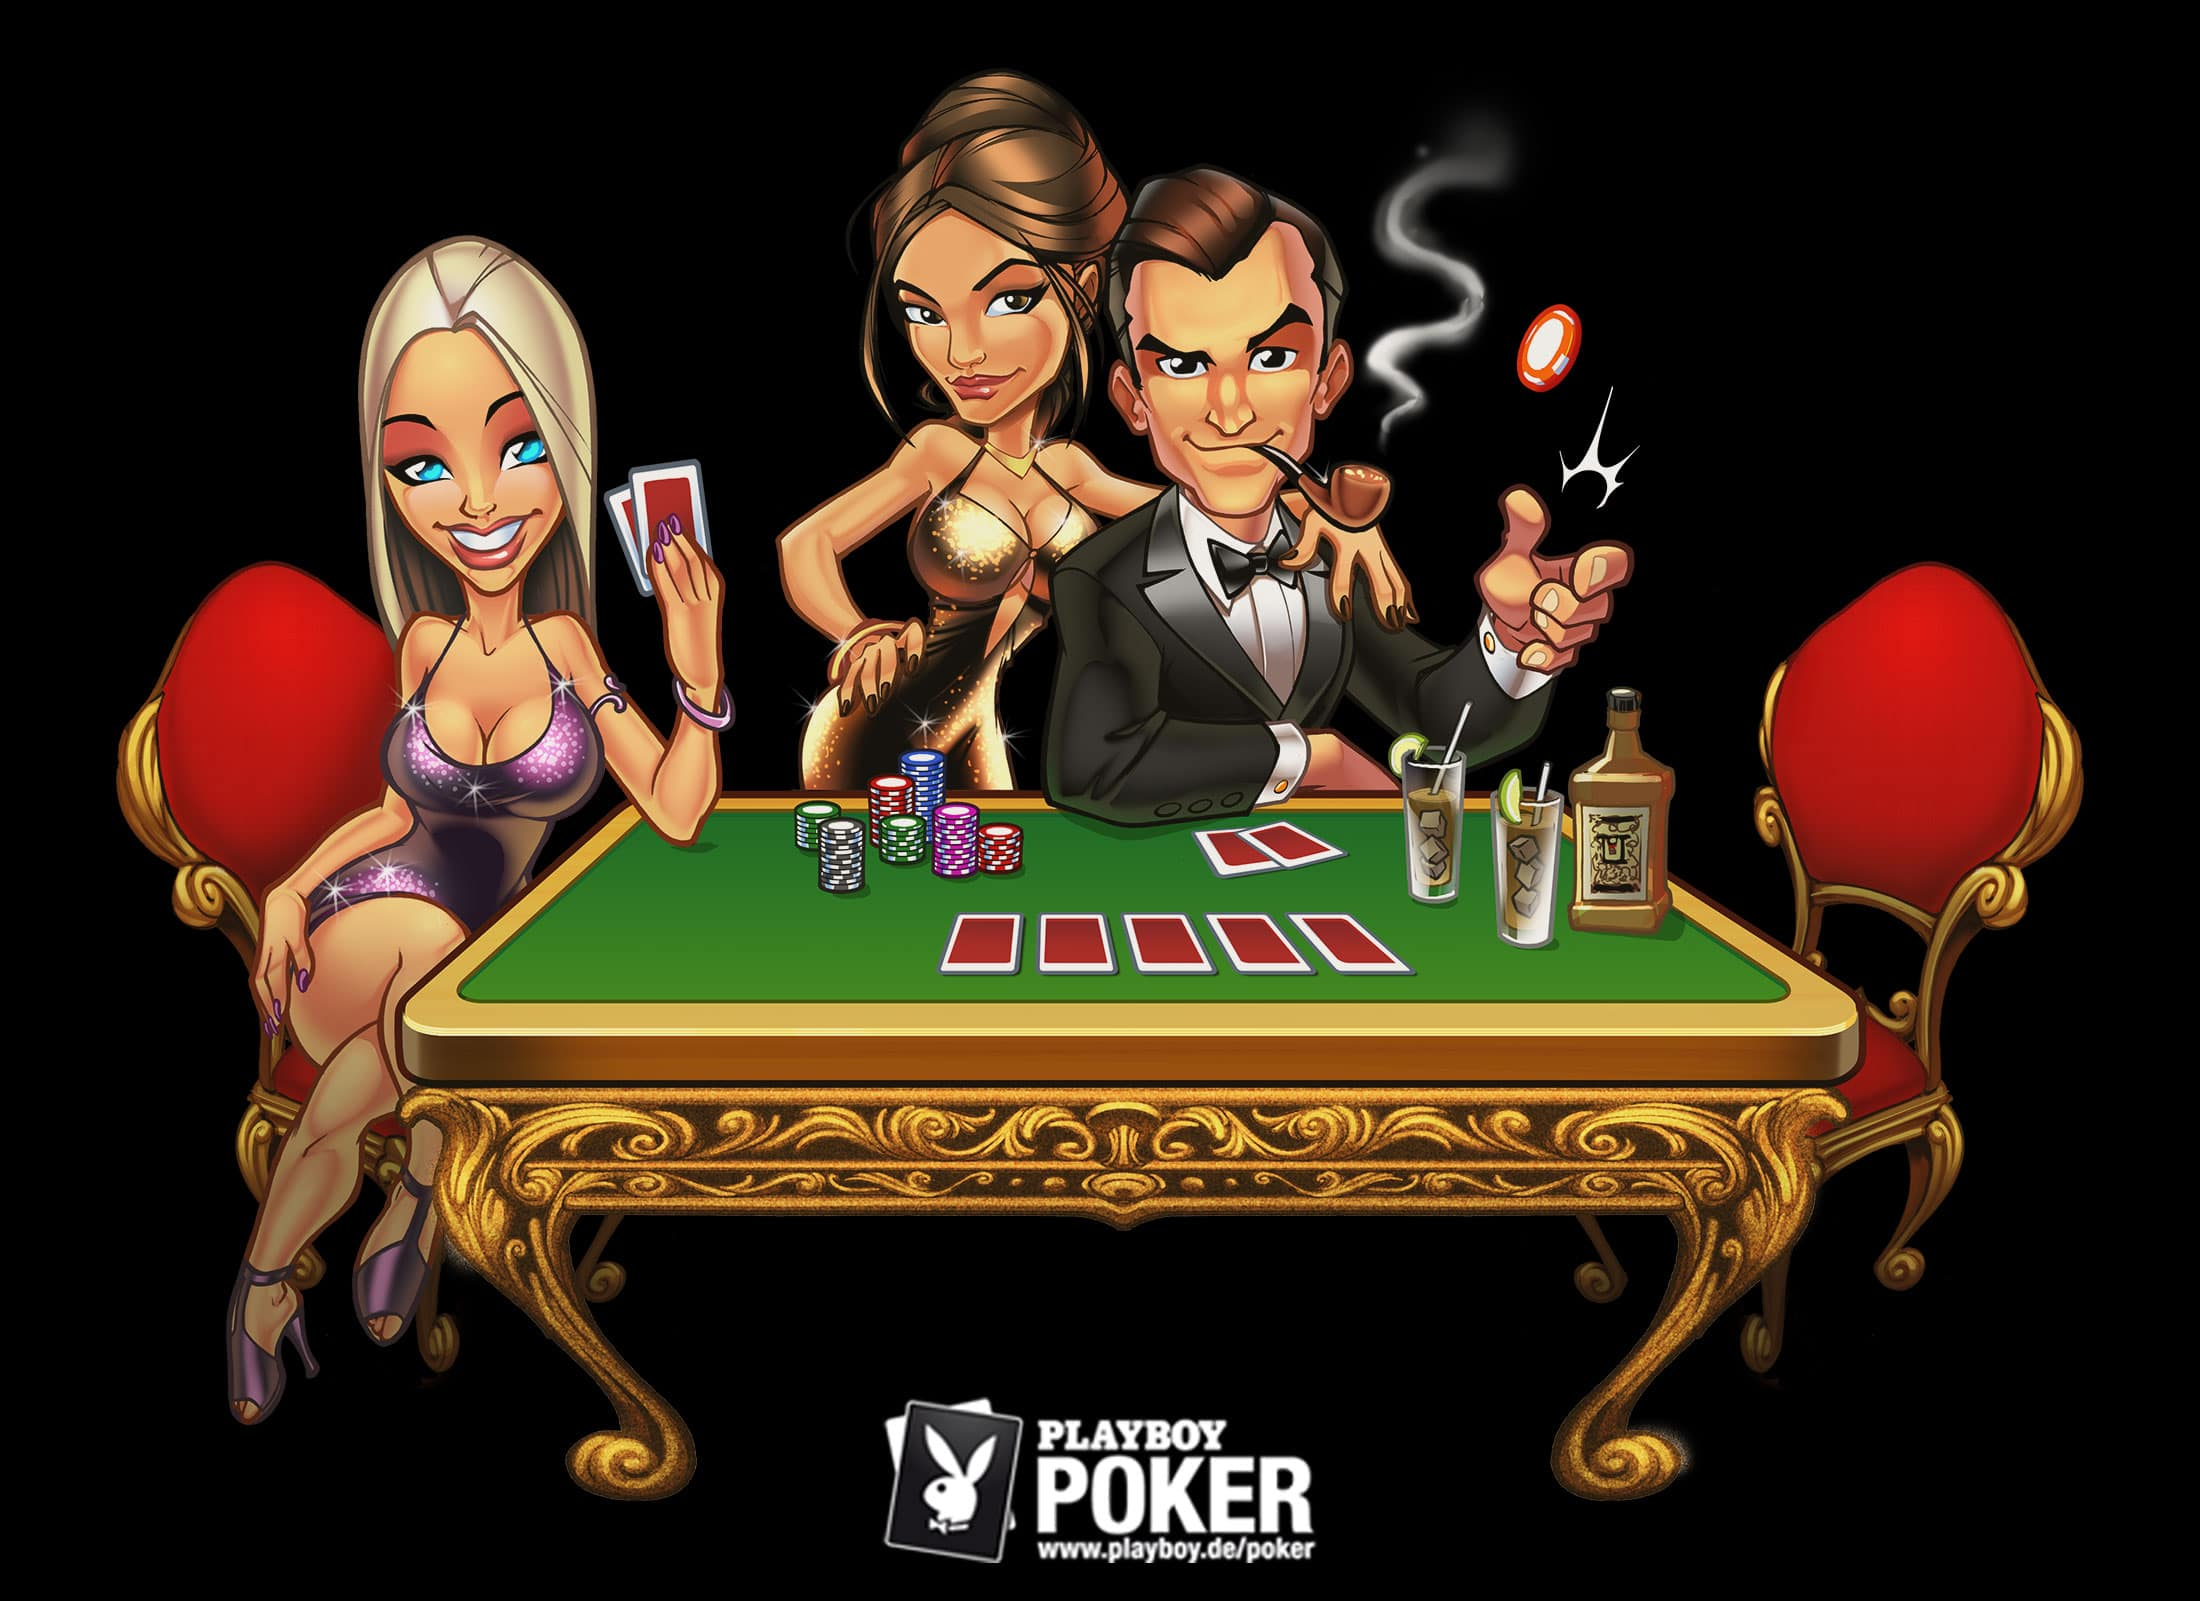 poker illustration 02